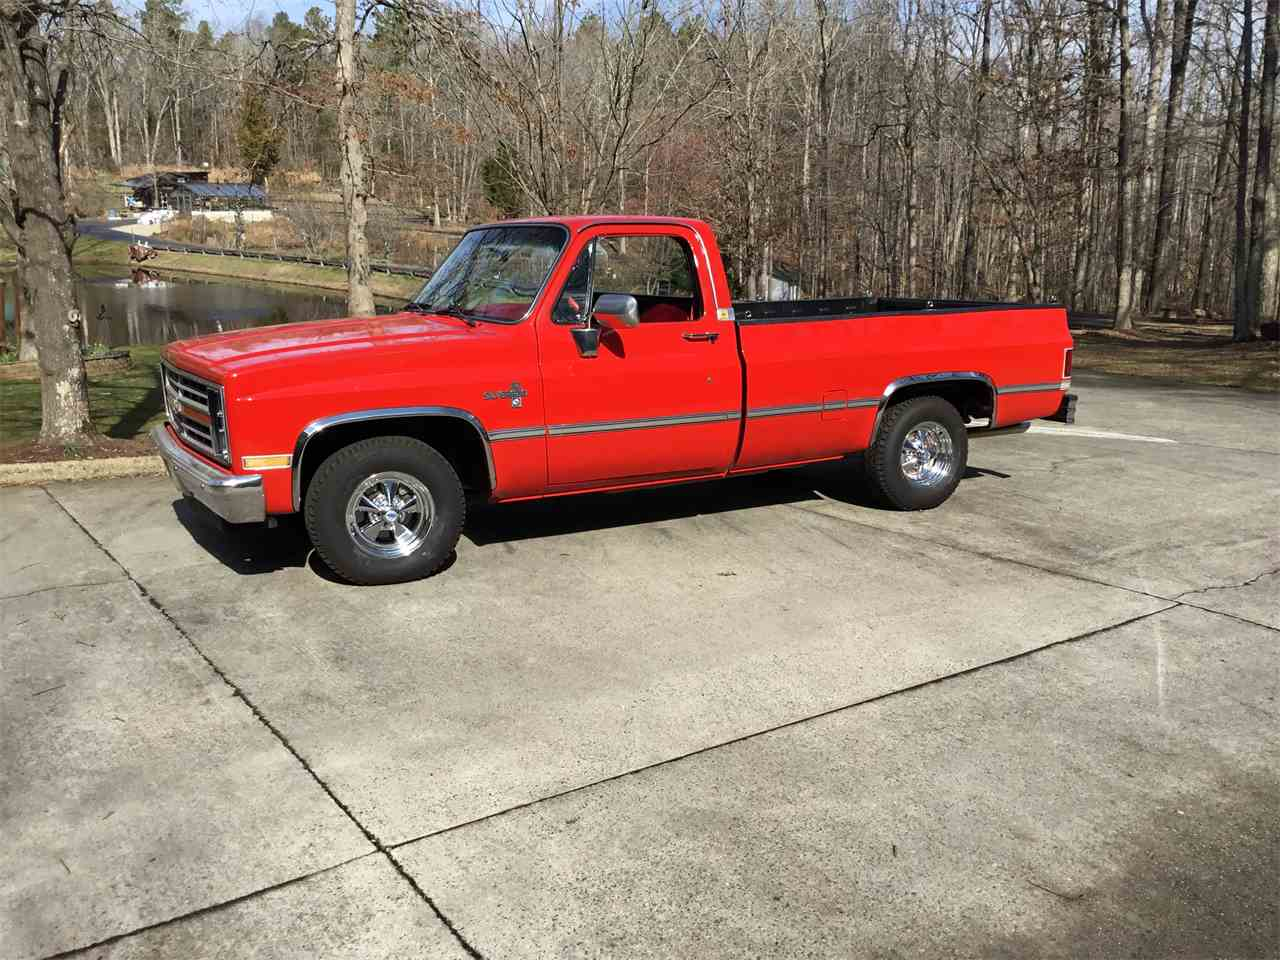 Truck 1981 chevy truck for sale : 1985 to 1987 Chevrolet Silverado for Sale on ClassicCars.com